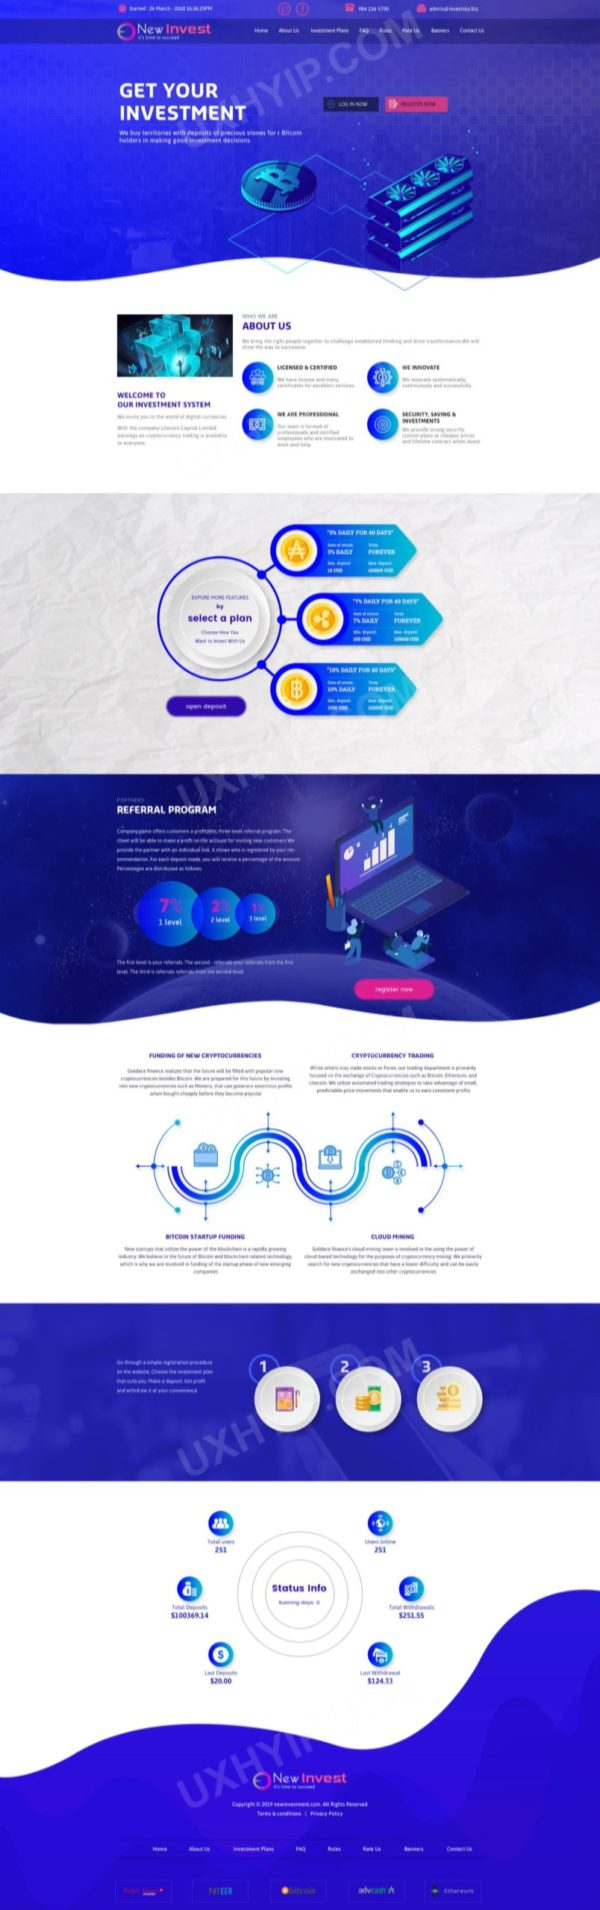 HYIP Template - Investment Business Template NewInvest ID 152